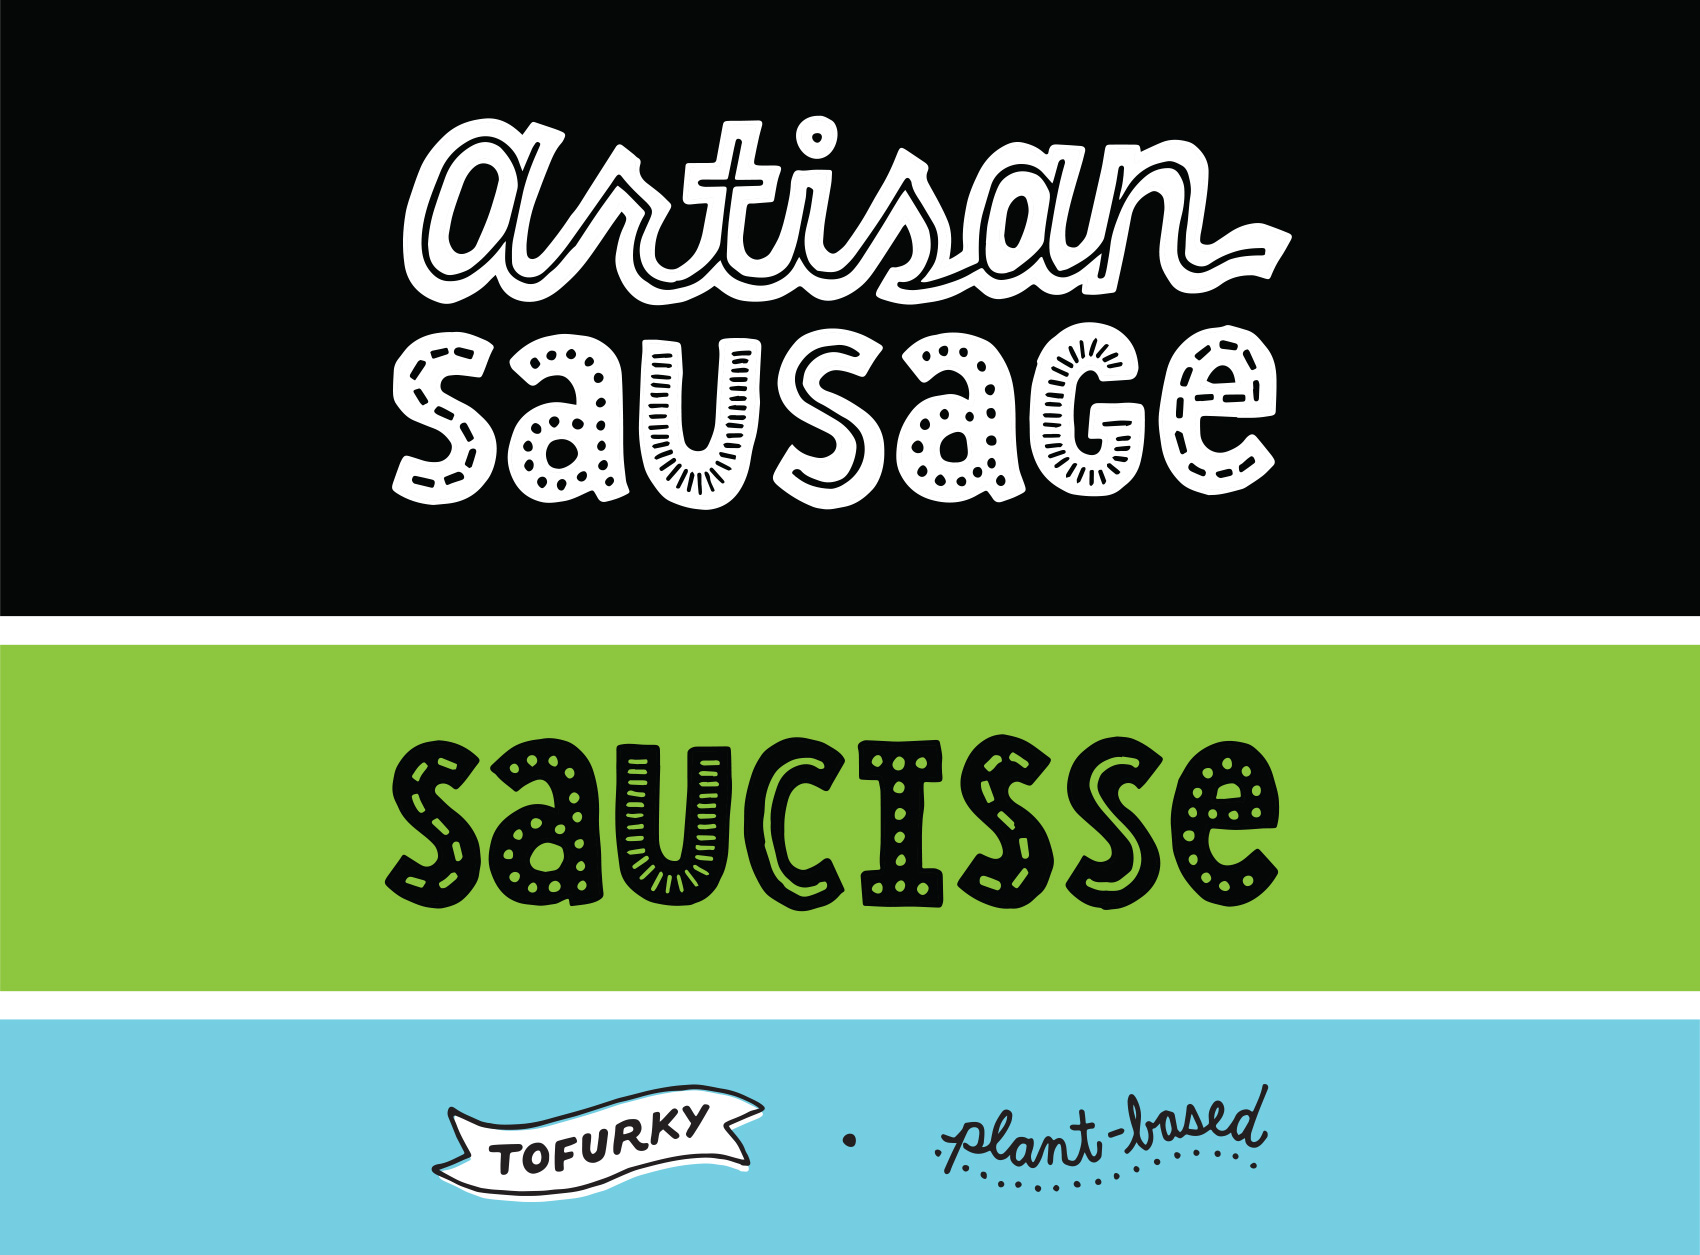 Hand lettering created for Tofurky Artisan Sausage Packaging: Artisan Sausage / Artisan Saucisse / Tofurky lettering in a banner / plant-based script.